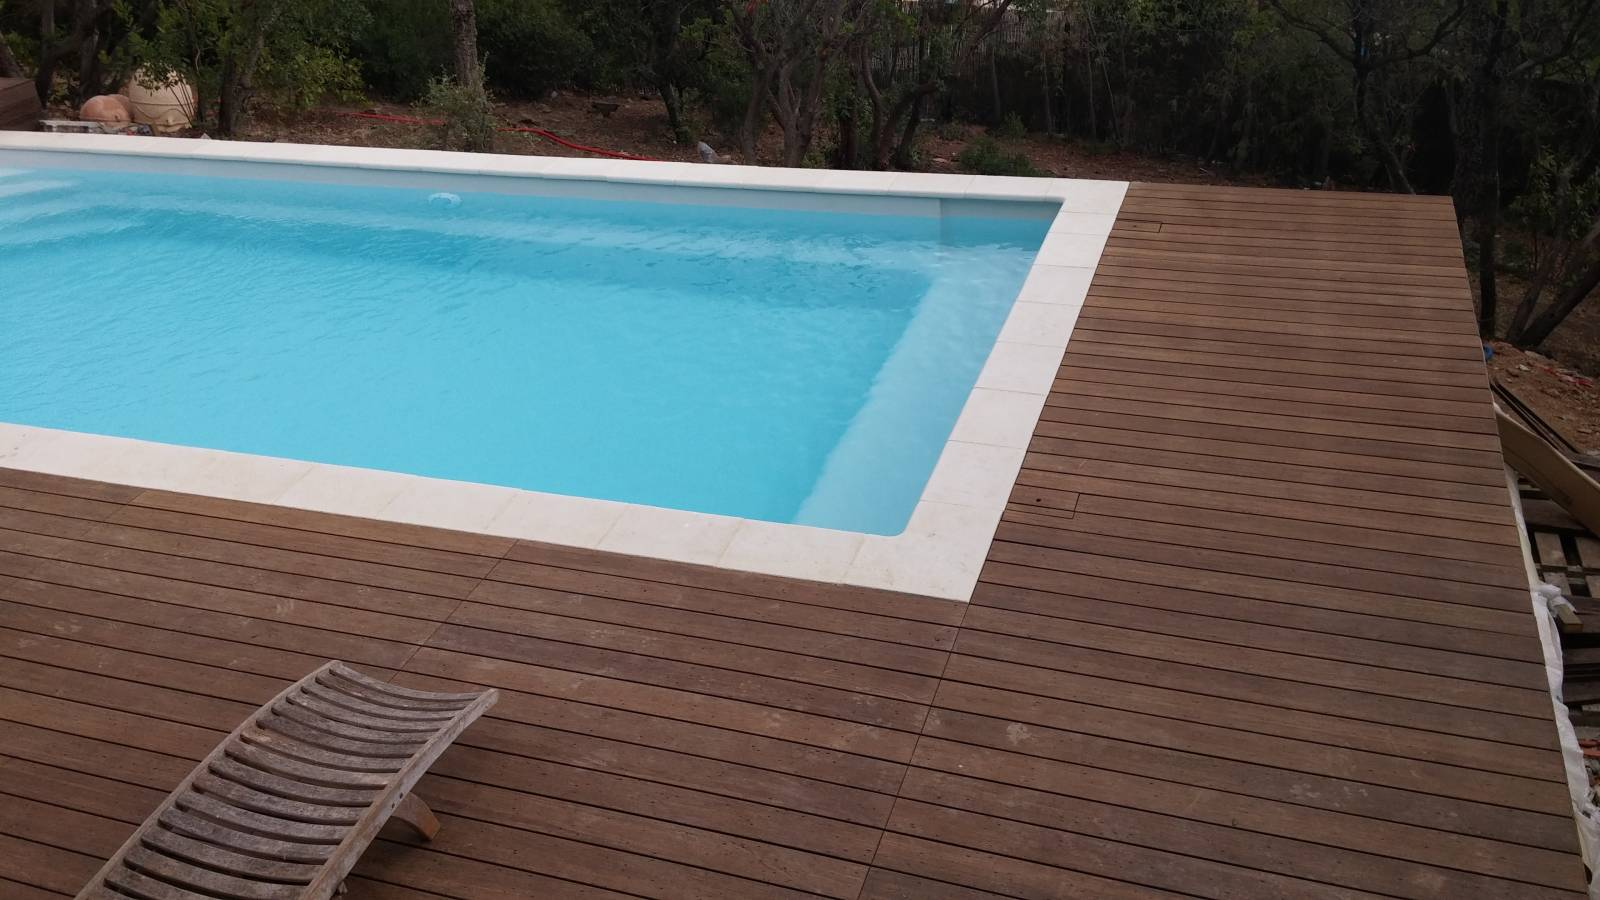 Piscine rectangulaire fond plat alliance piscines mod le for Piscine 05